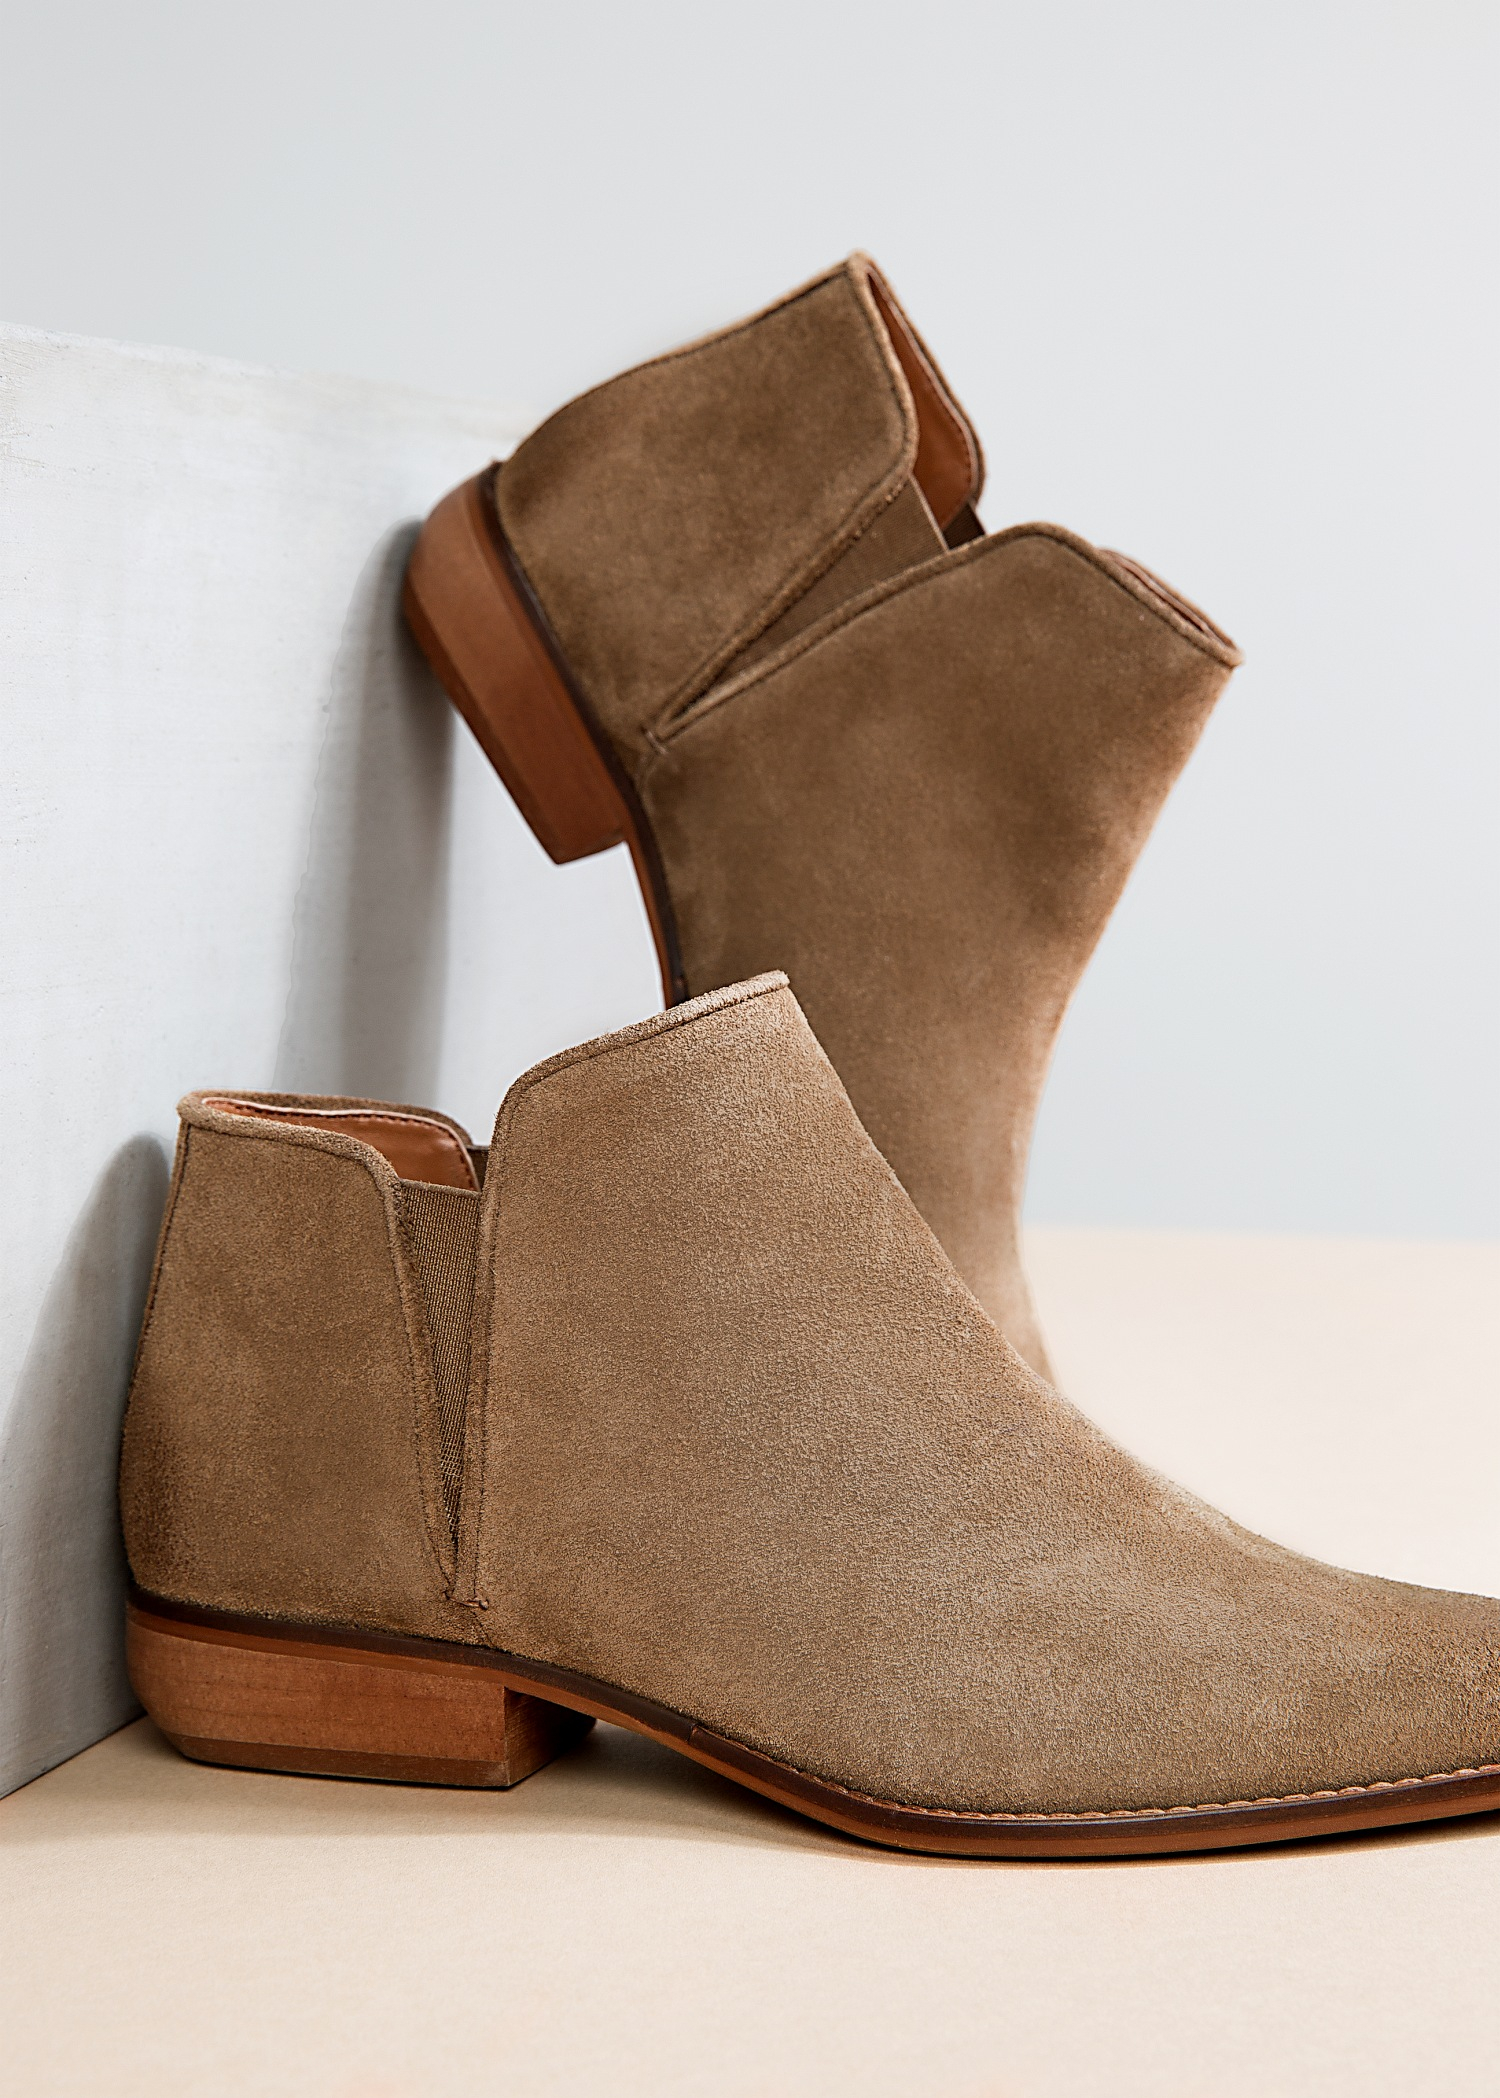 Flat Ankle Boots Suede u6ozg9wl